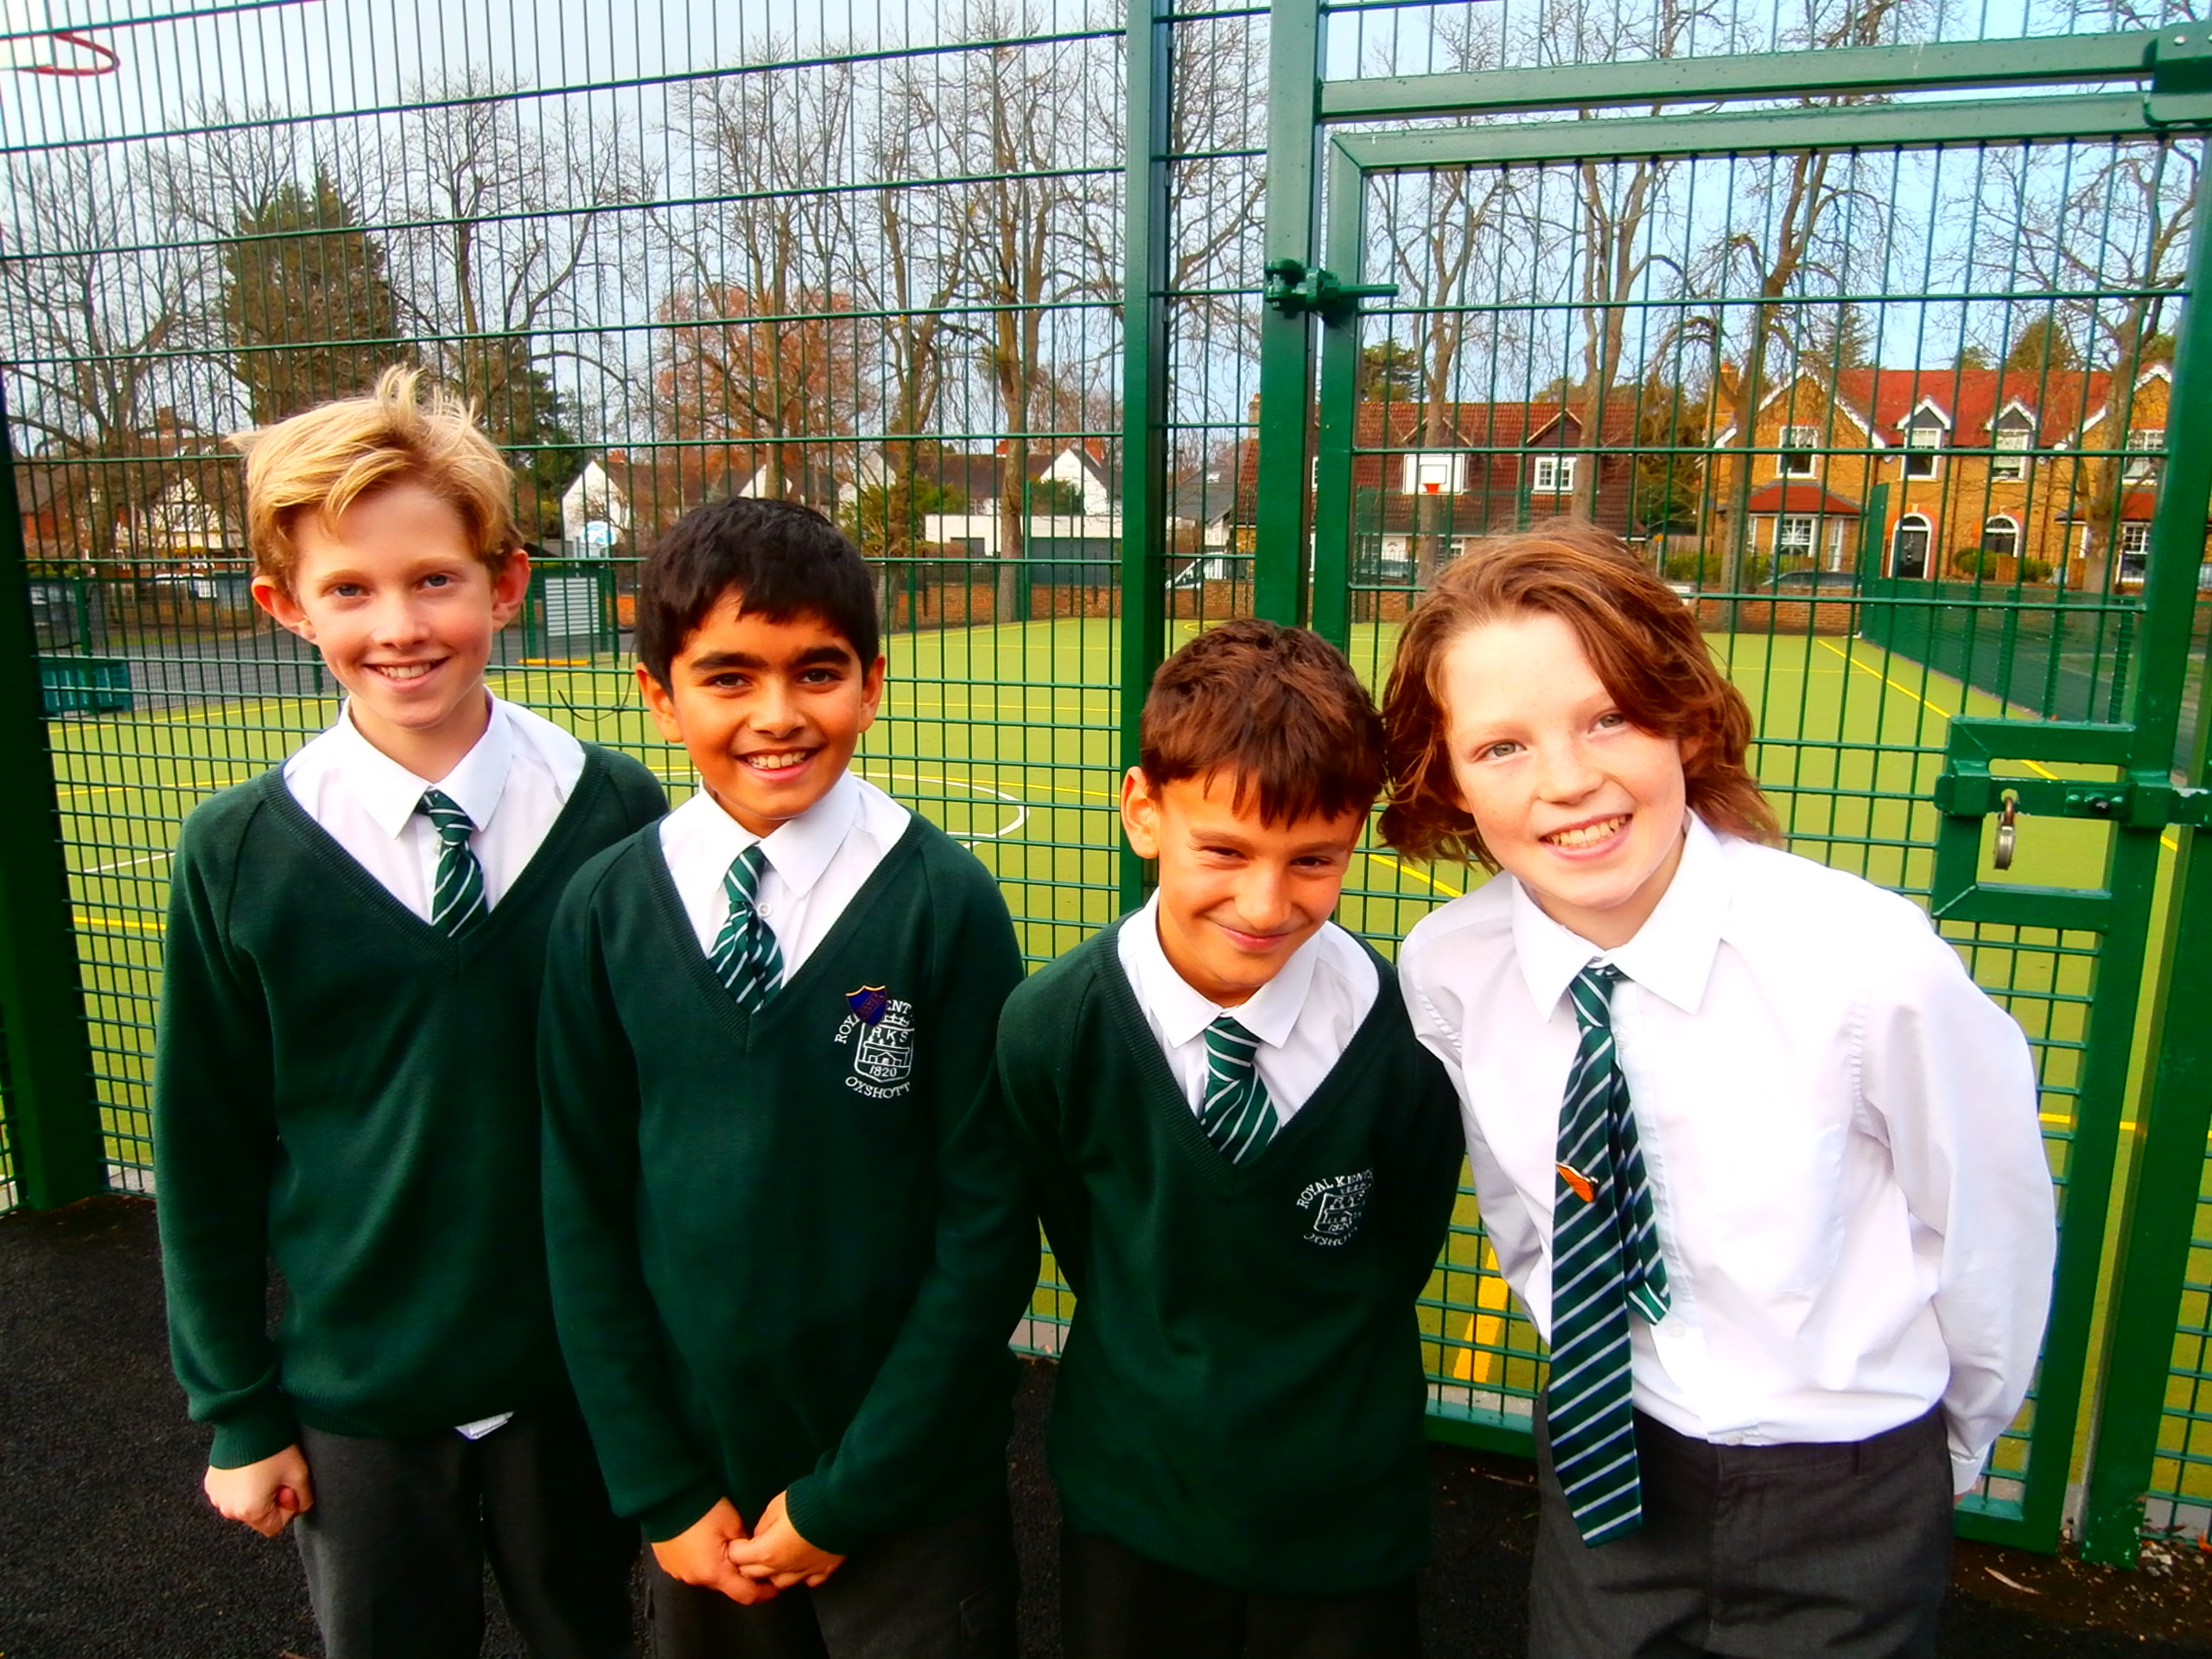 These Surrey children think their new MUGA pitch is a great success!